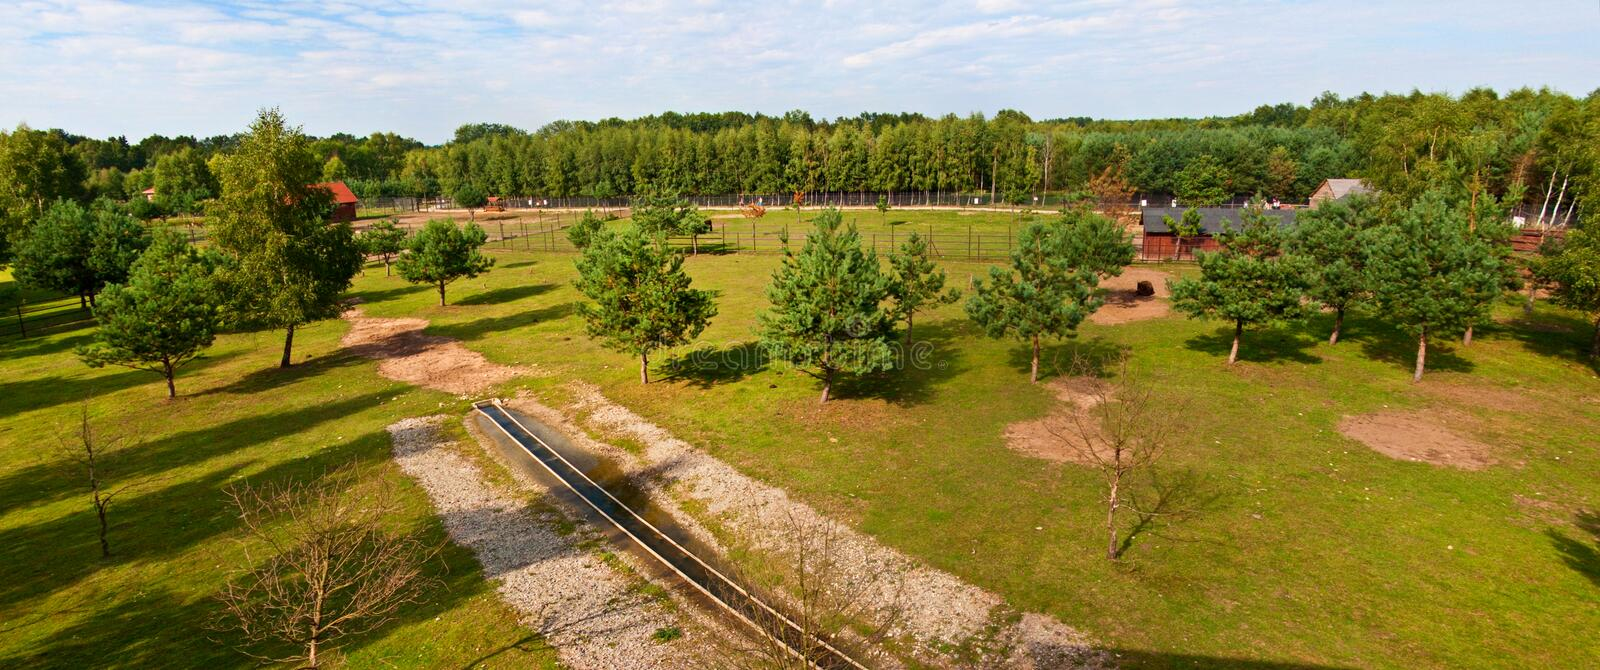 Download Open air zoo stock photo. Image of land, garden, evening - 34961240